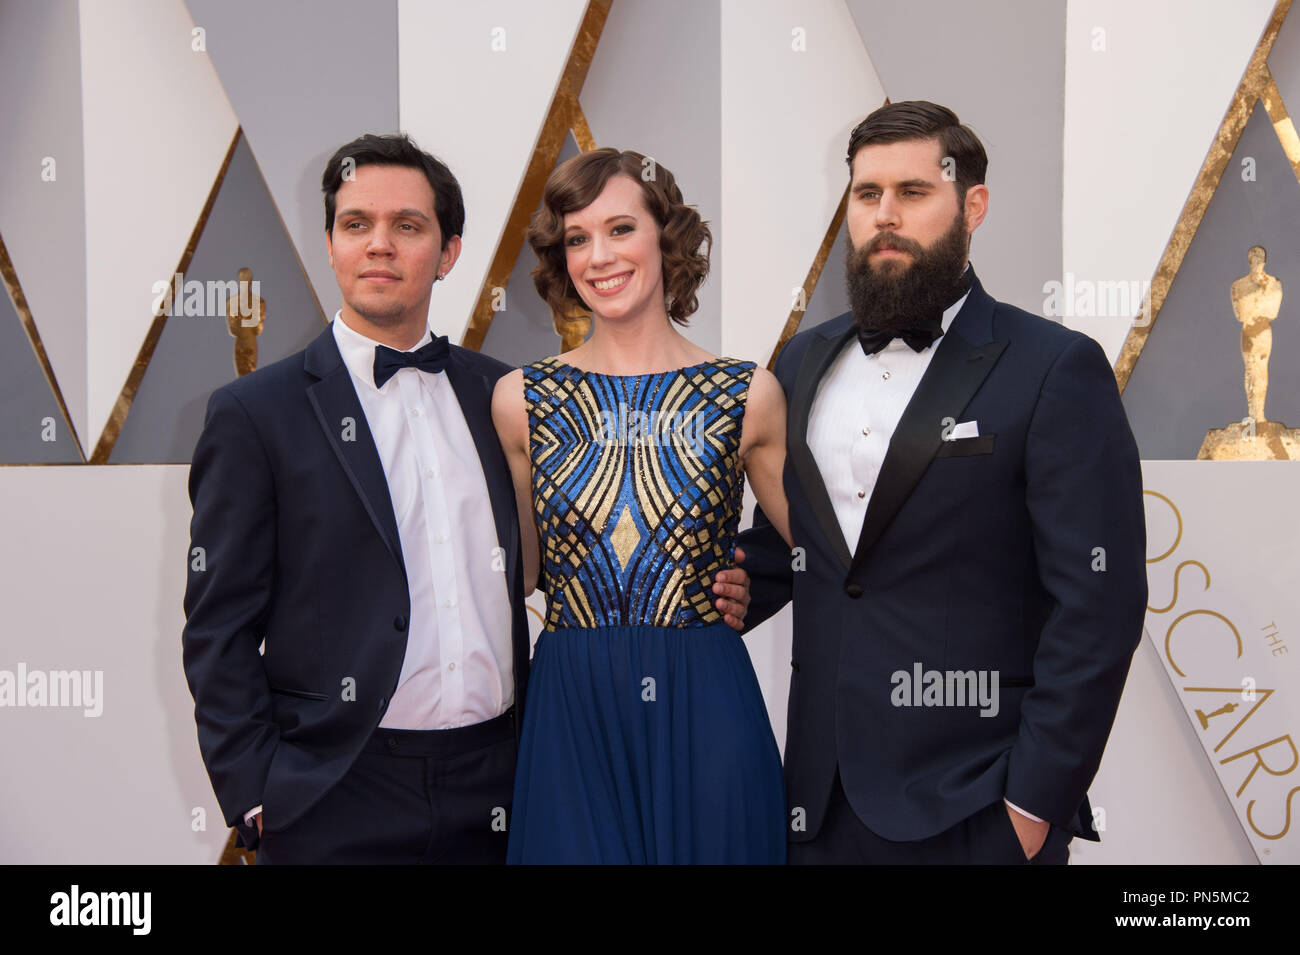 Actress Chloe Pirrie and guests arrive at The 88th Oscars® at the Dolby® Theatre in Hollywood, CA on Sunday, February 28, 2016.  File Reference # 32854_009THA  For Editorial Use Only -  All Rights Reserved - Stock Image